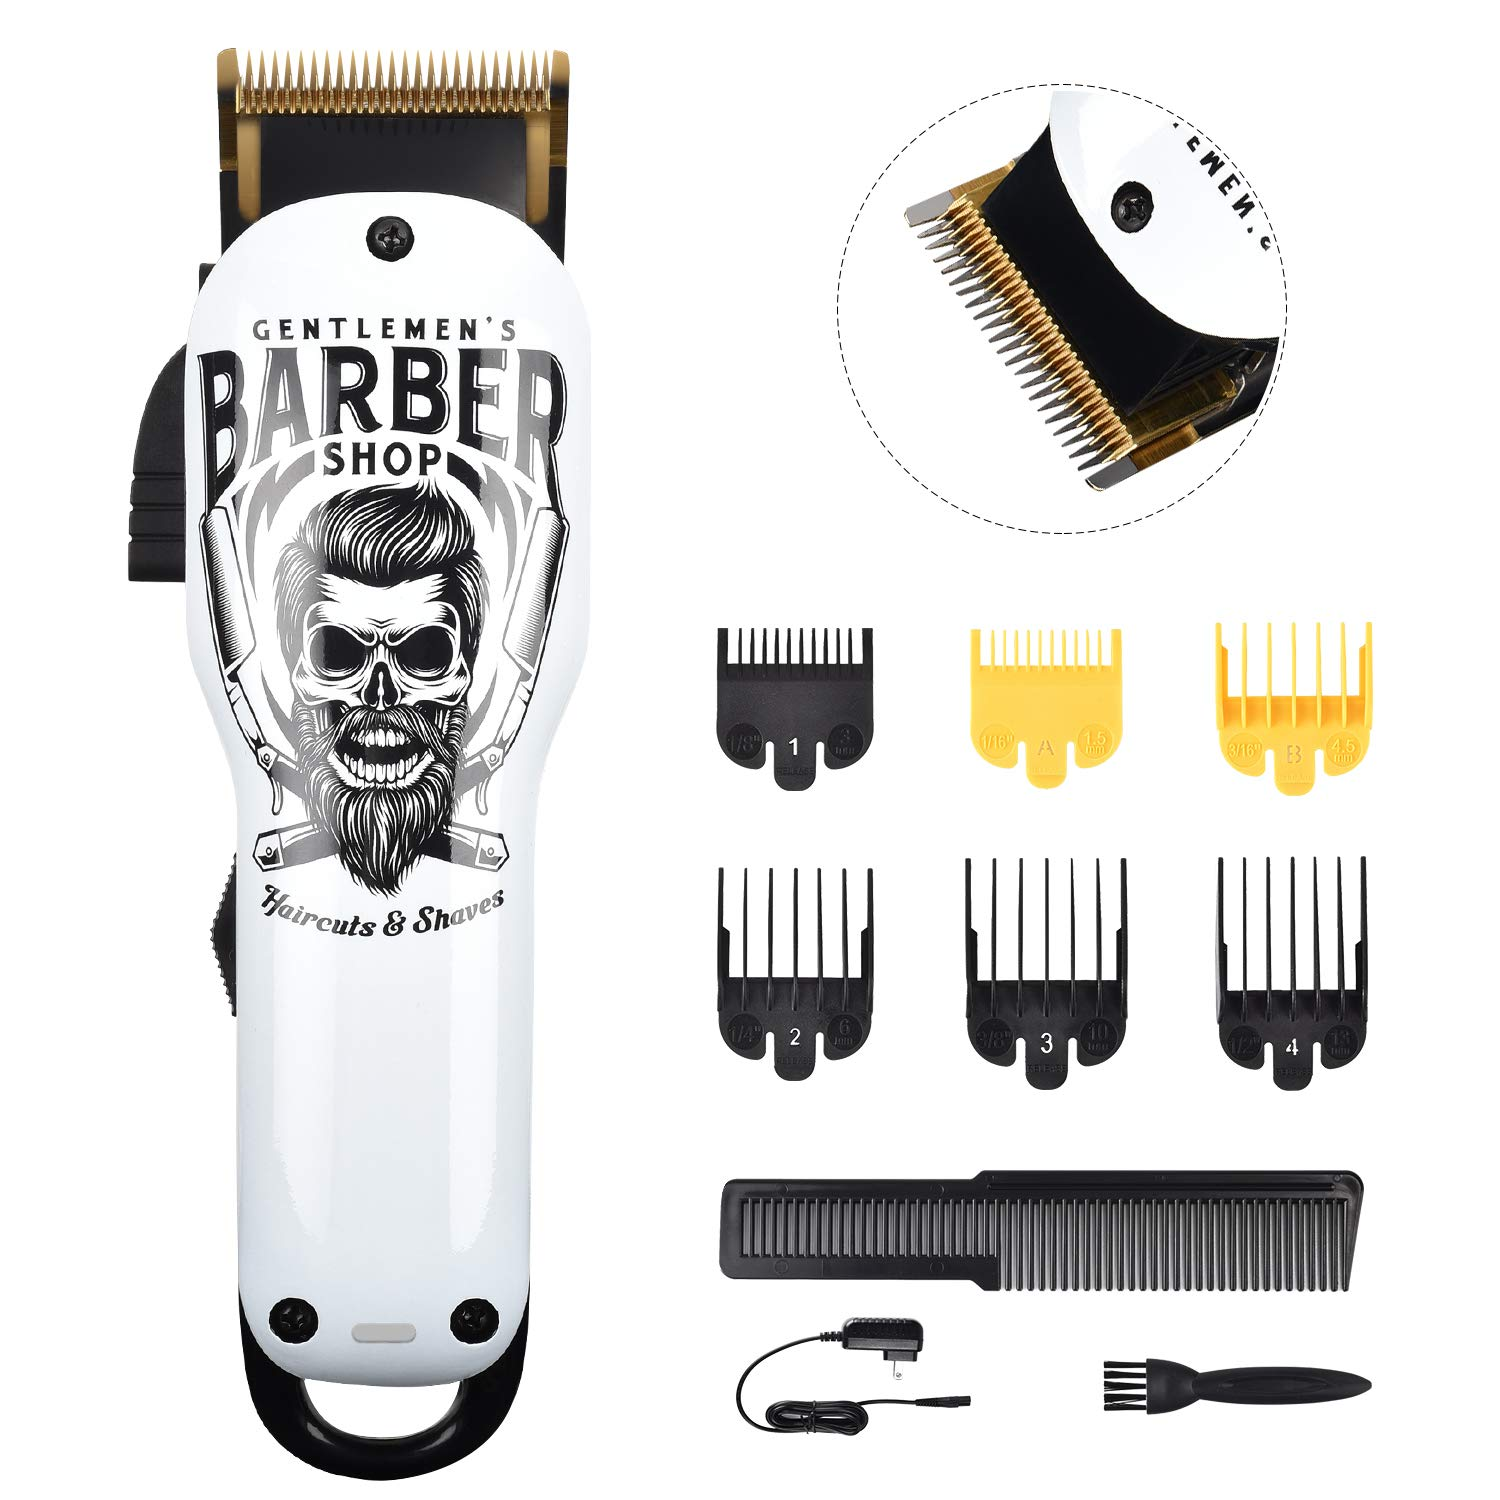 BESTBOMG Professional Cordless Hair Clippers and Beard Trimmer